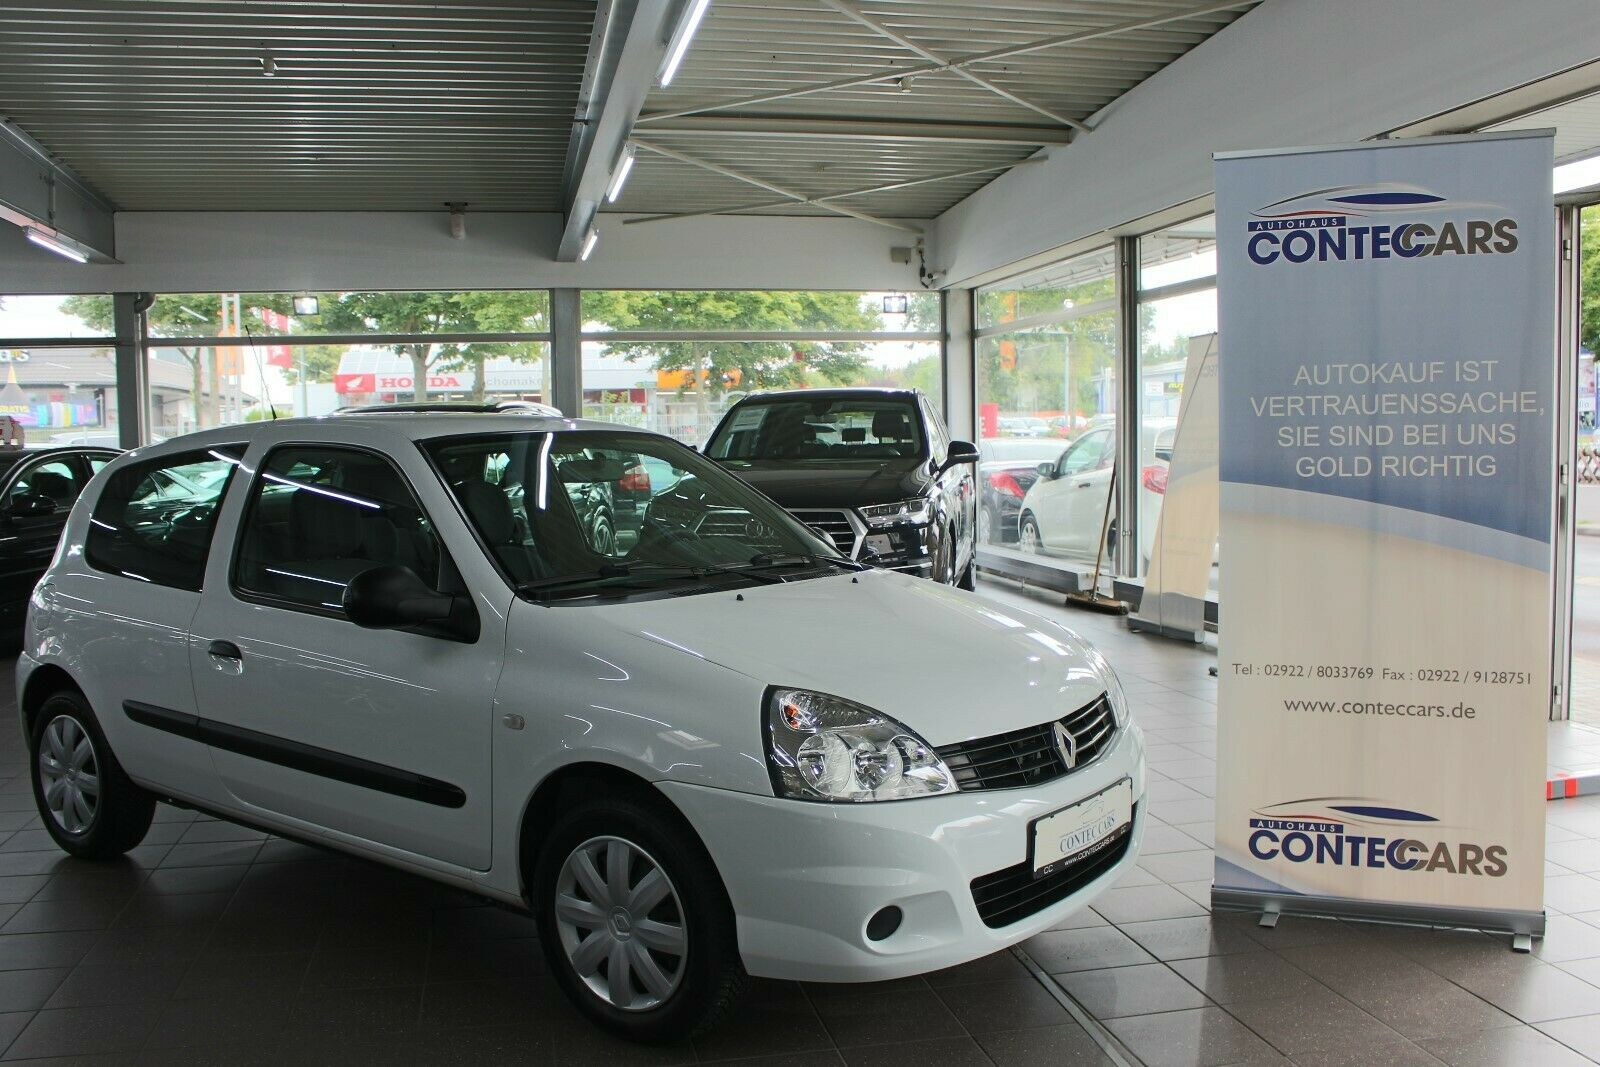 RENAULT Clio II 1.2 Campus Authentique Klima USB